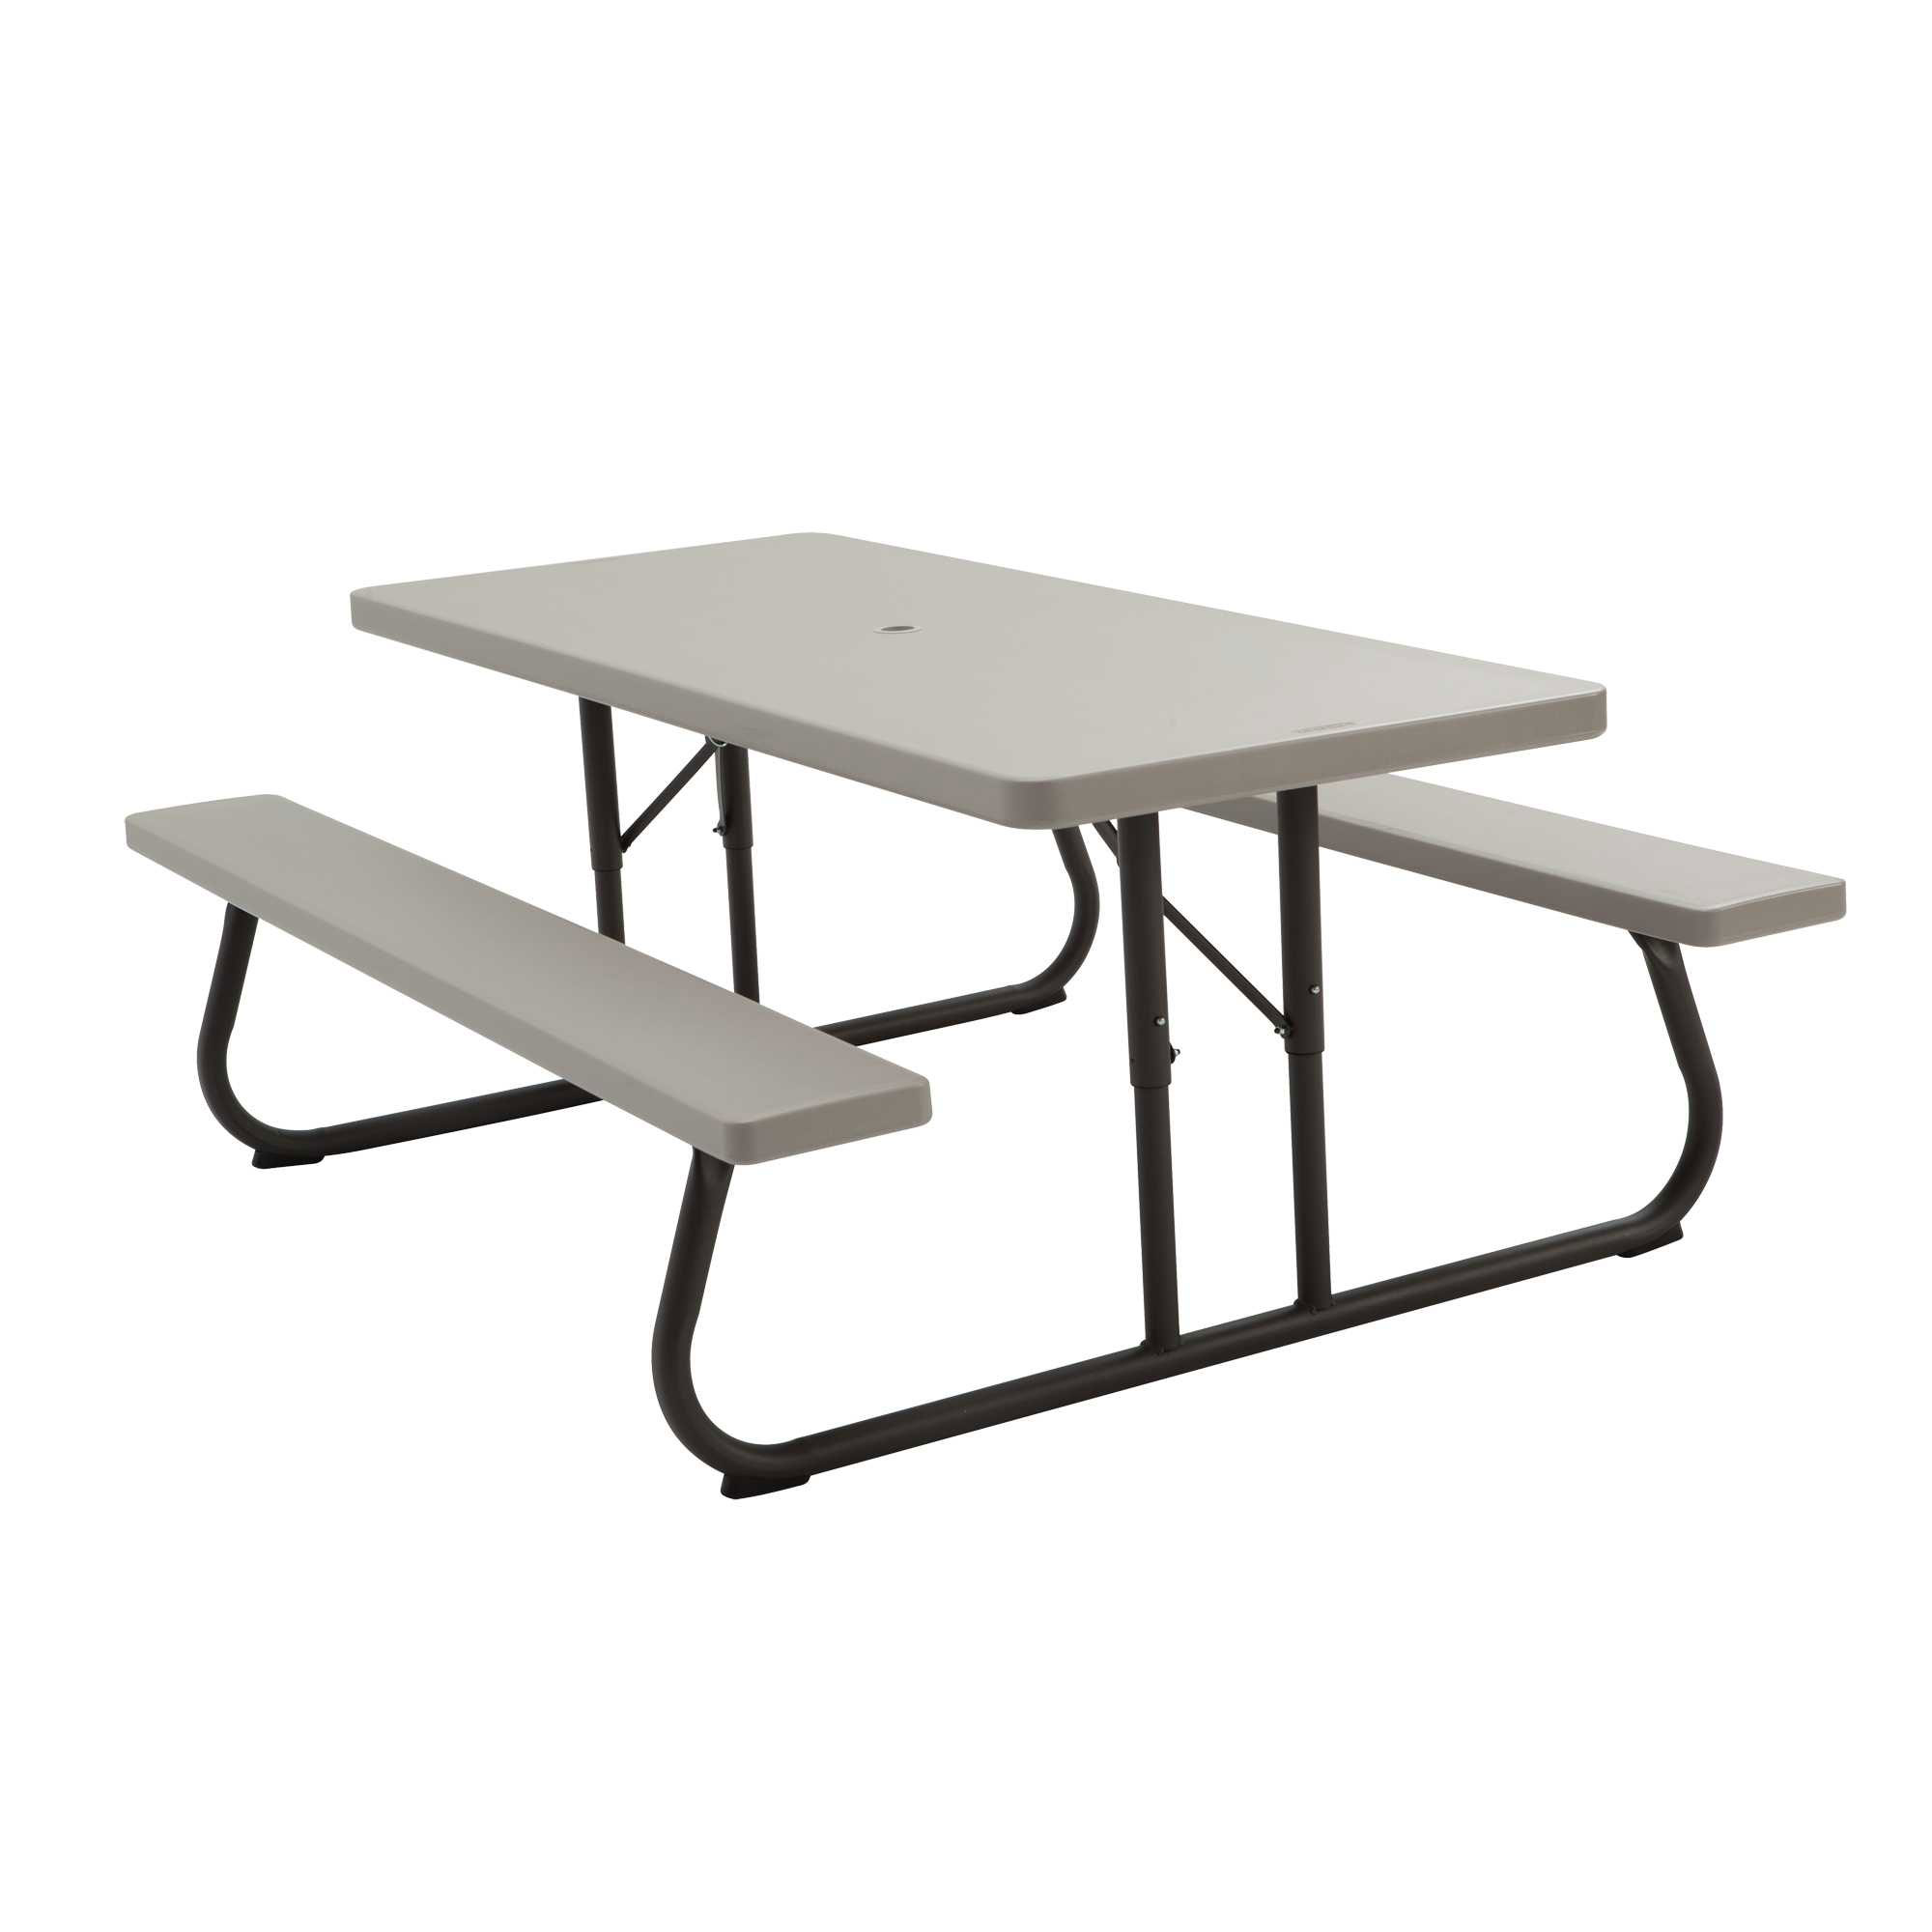 LIFETIME PUTTY PLASTIC 6 FOLDING PICNIC TABLE ON SALE WITH